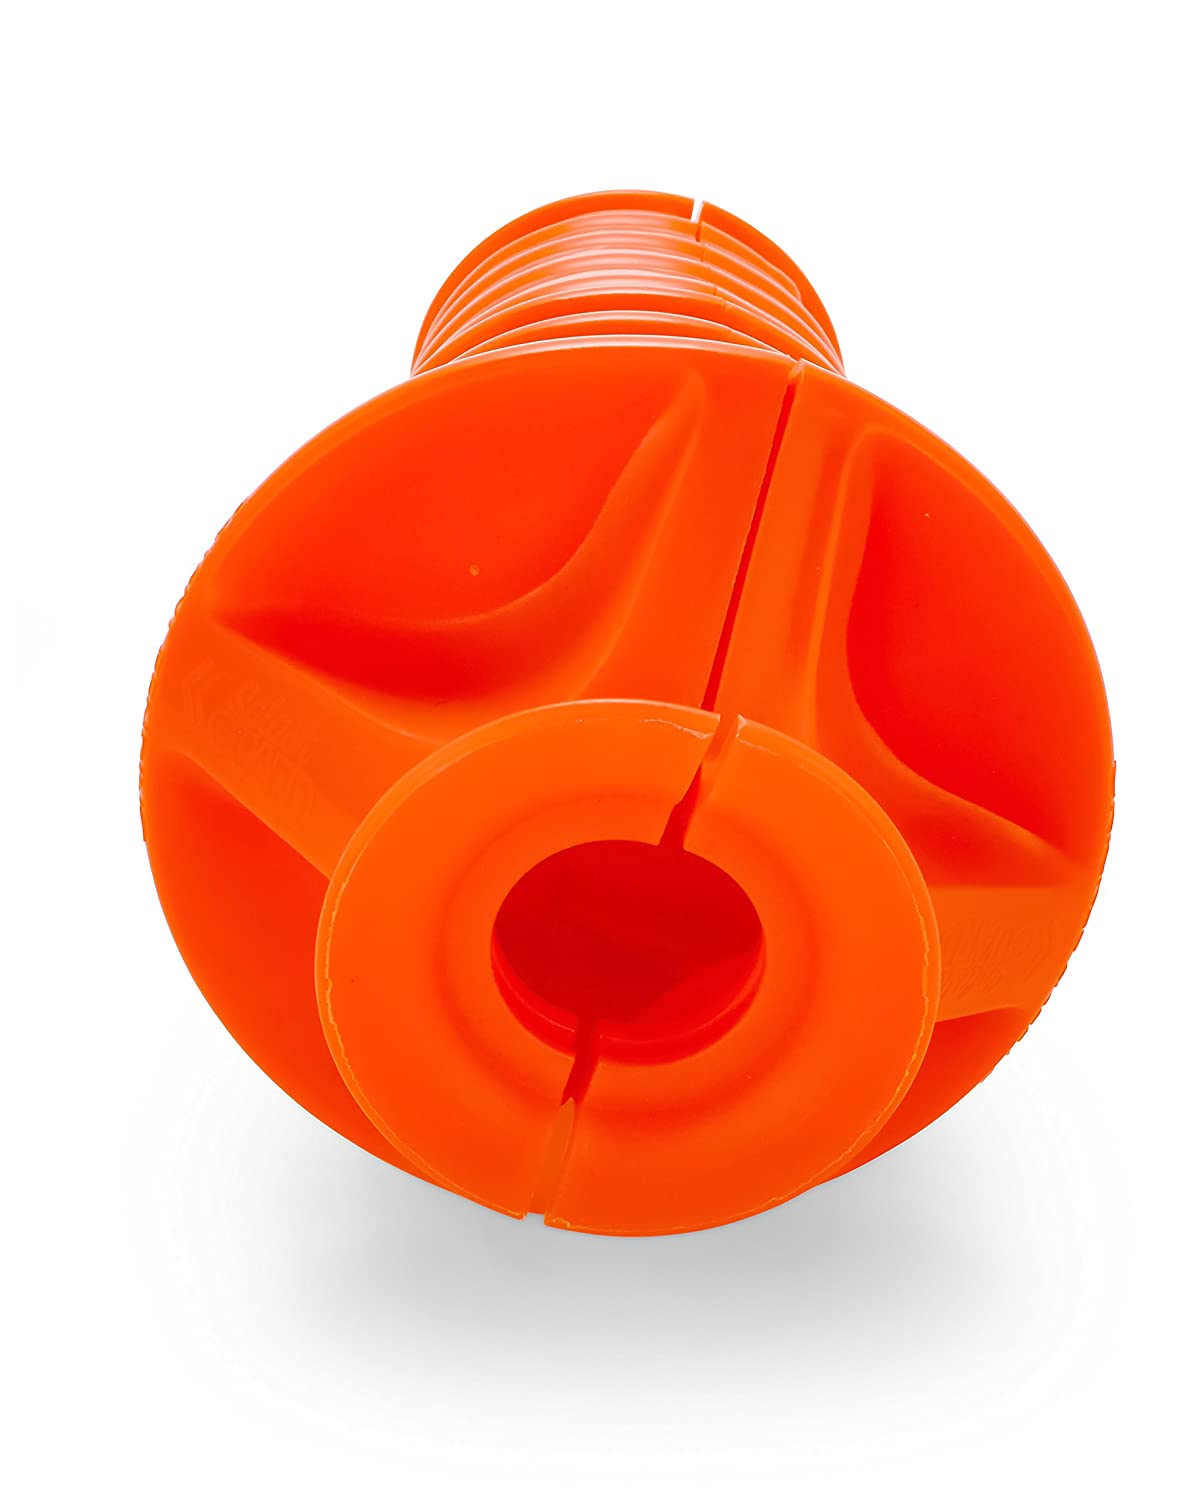 Creates Powerful Cleaning Action that Dislodges and Flushes Stubborn Waste Deposits and Combats Odors Camco RV Flexible Swivel Stik with Shutoff Valve 40074